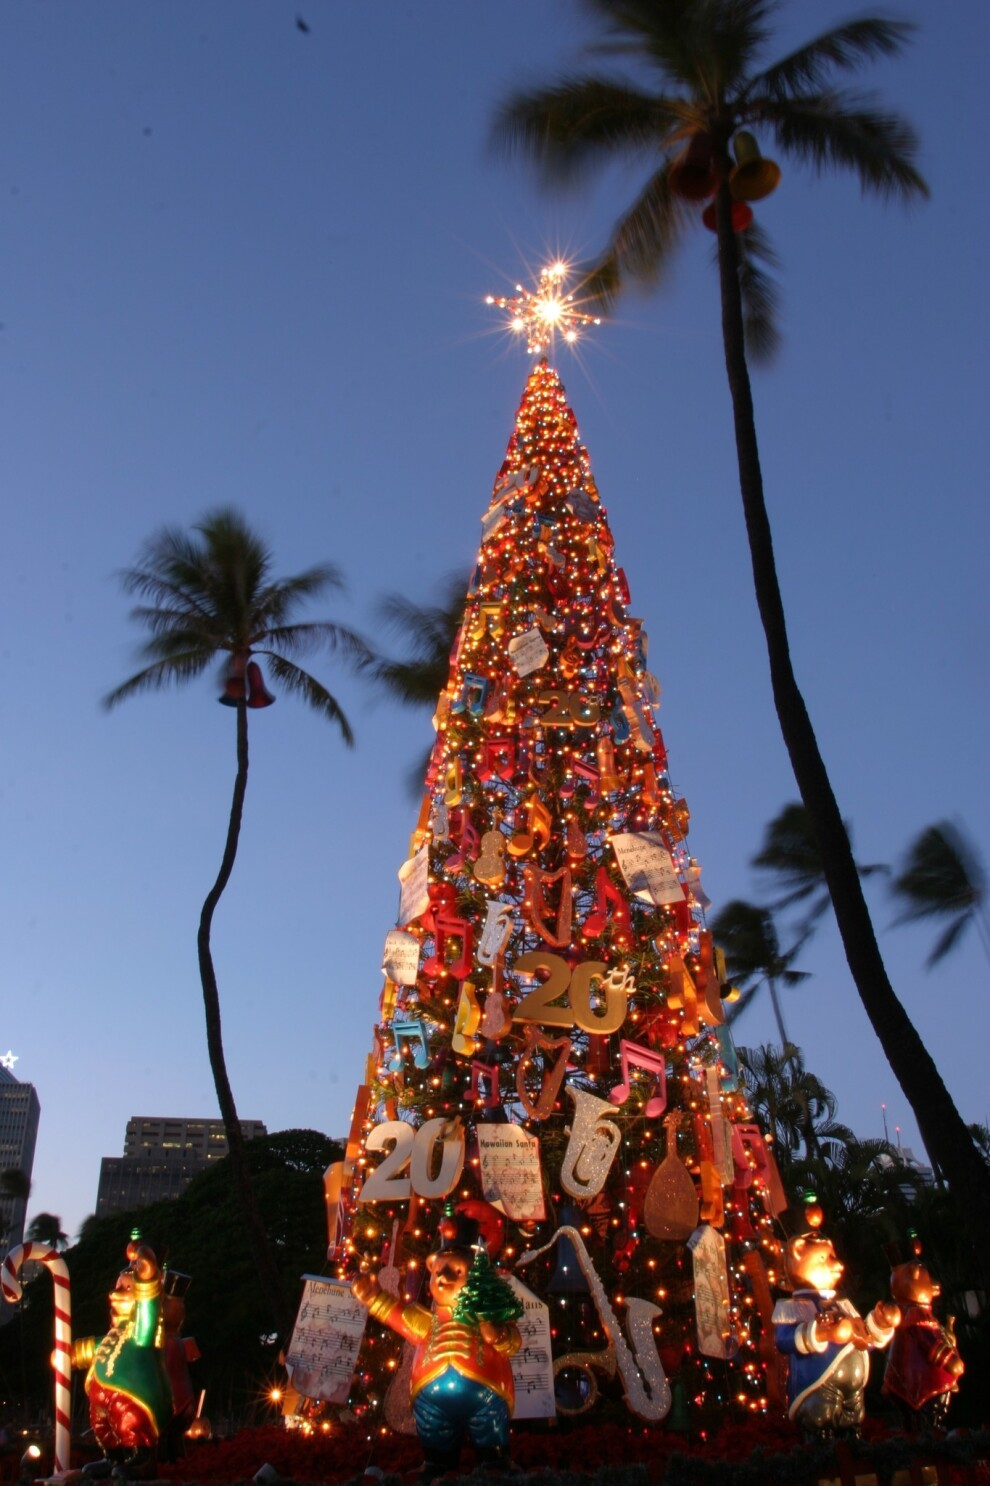 Christmas Lights 2021 In Oahu Hawaii On Oahu Parades A Gift Fair Gingerbread And A Special Tree Los Angeles Times